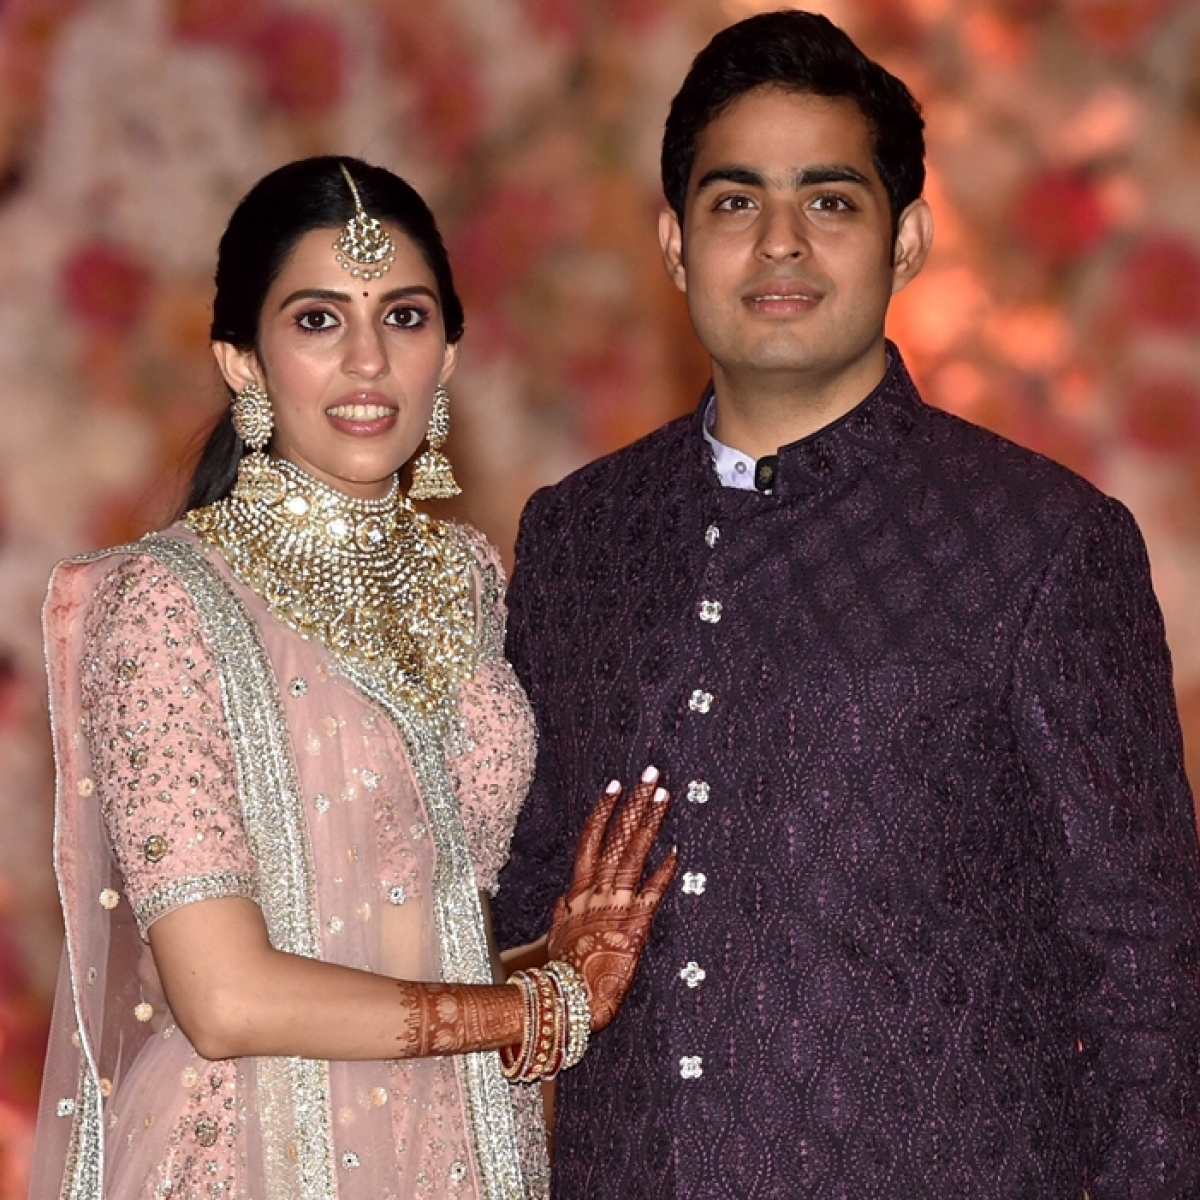 'Now we know why they bought Hamley's...': Twitter reacts as Akash Ambani, Shloka Mehta become parents